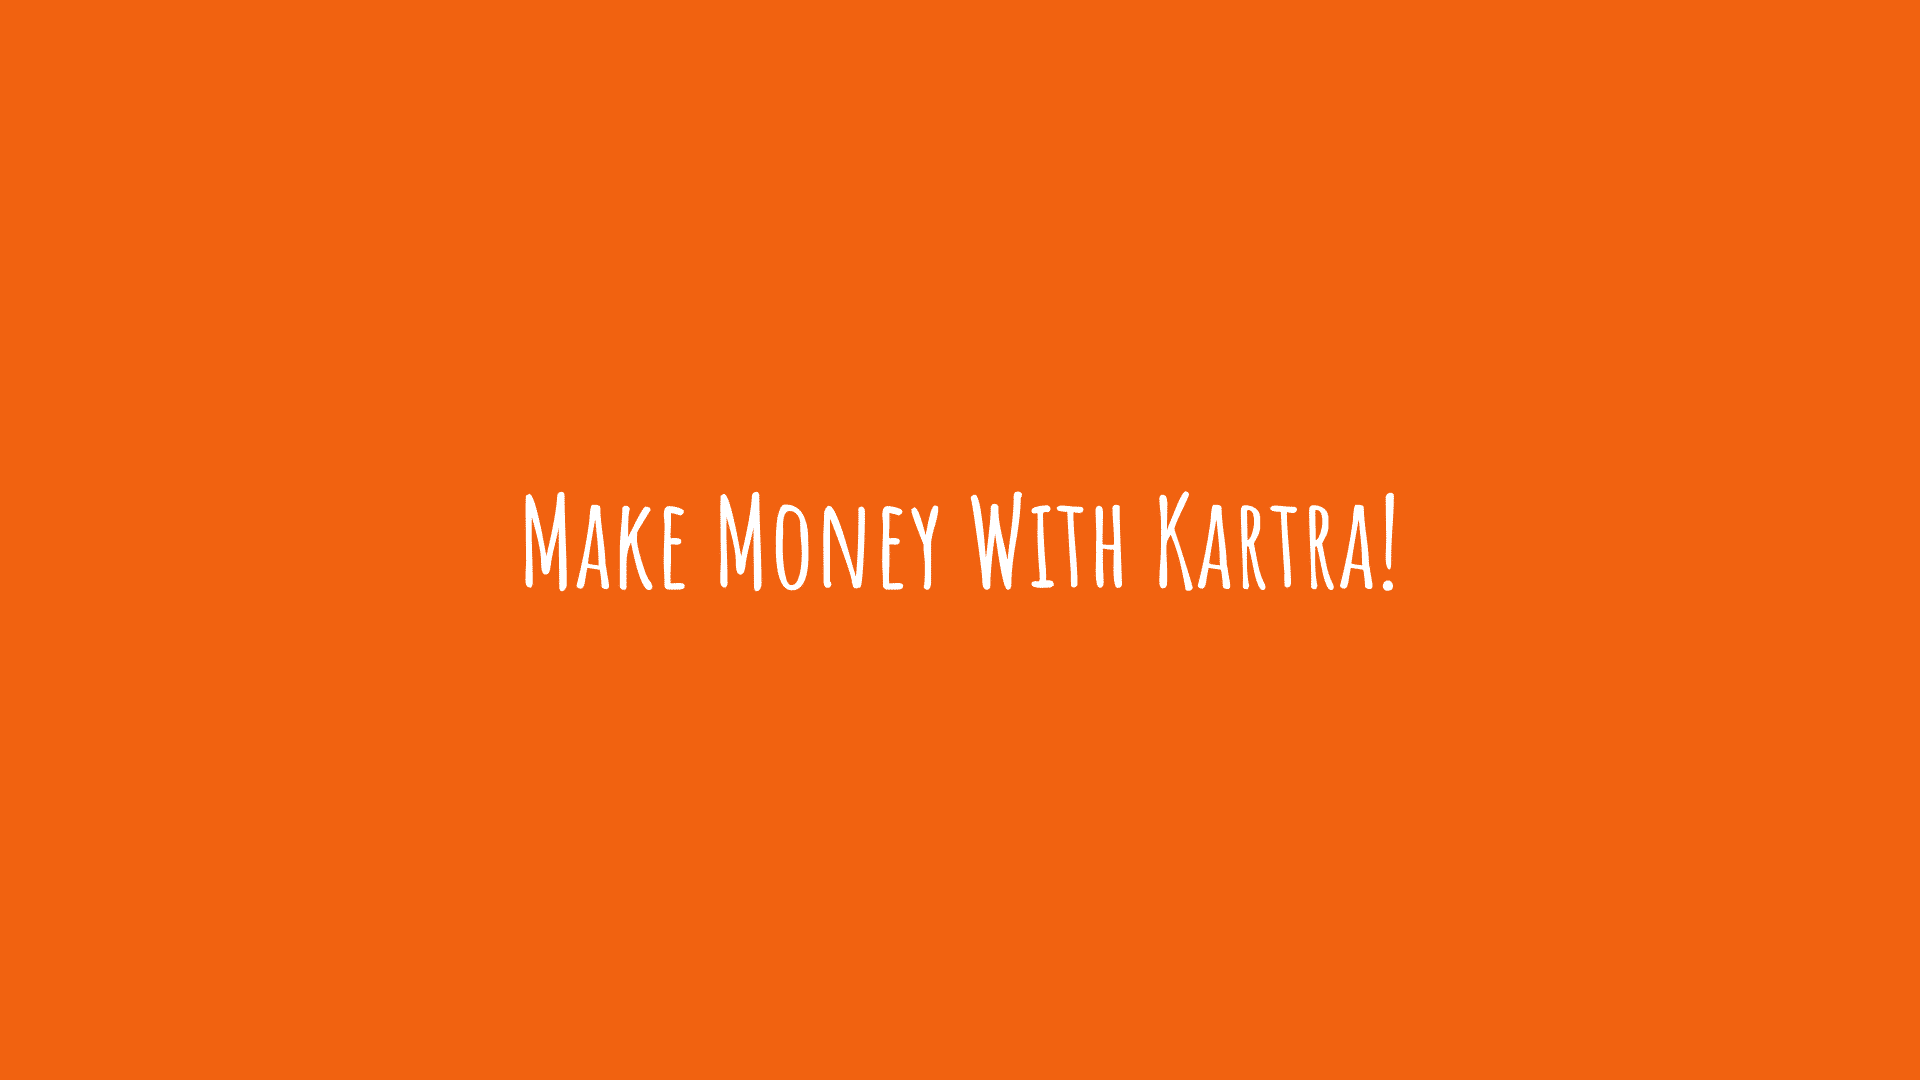 Make Money With Kartra